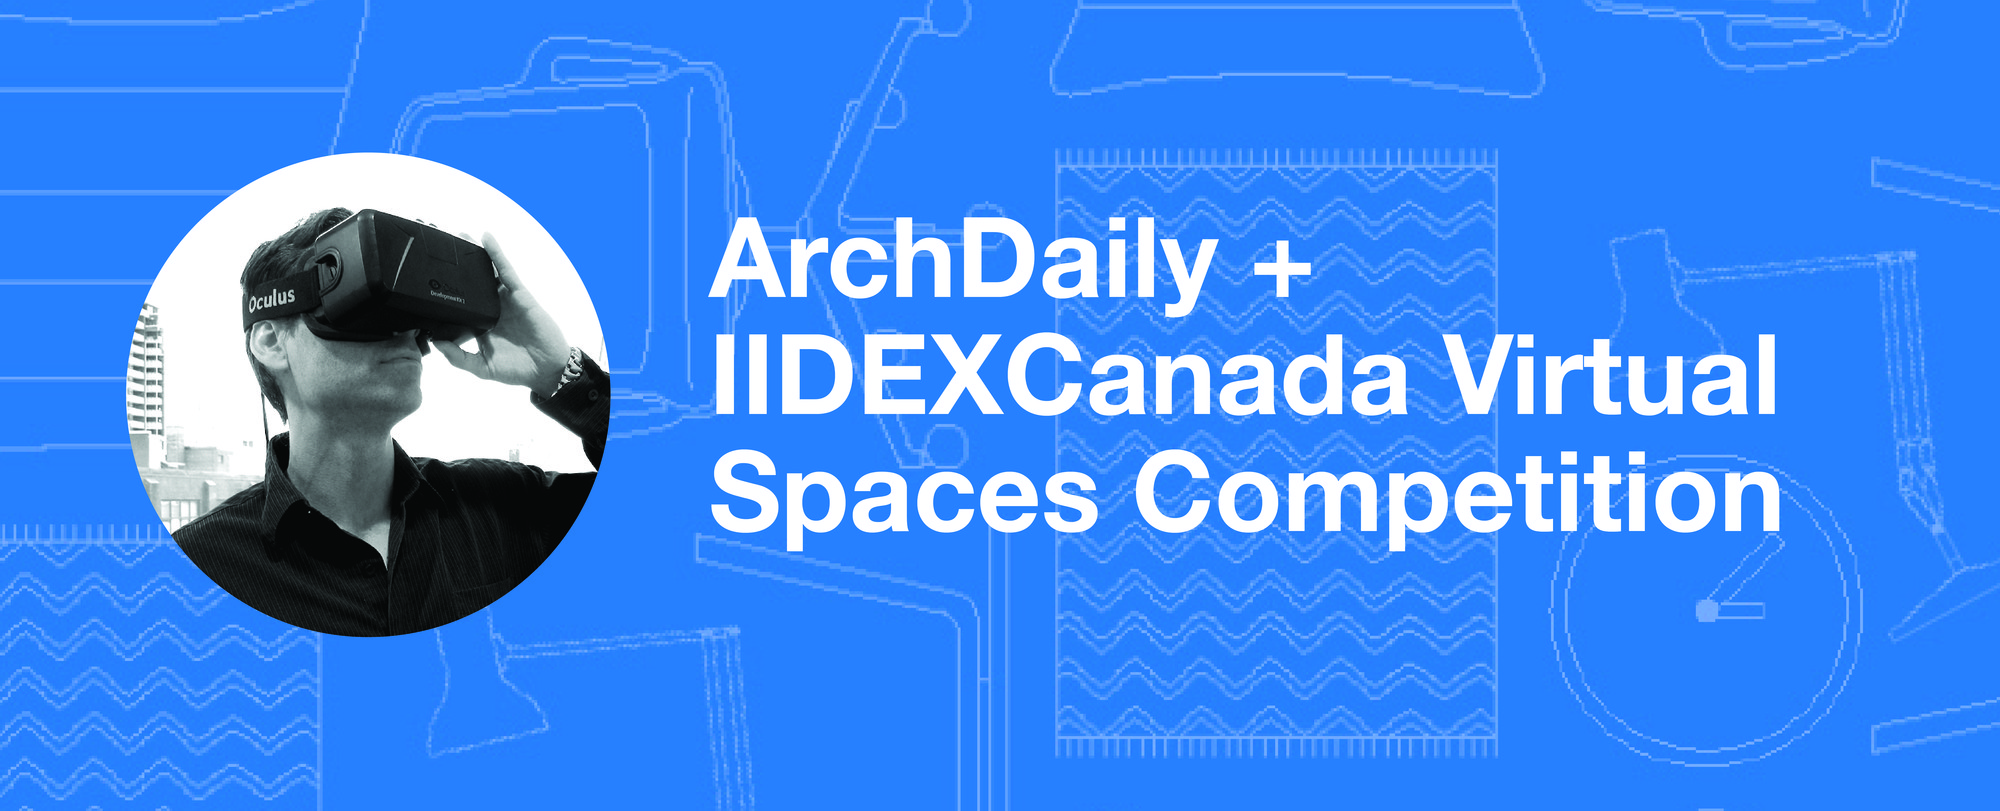 ArchDaily + IIDEXCanada Launch Virtual Spaces Competition